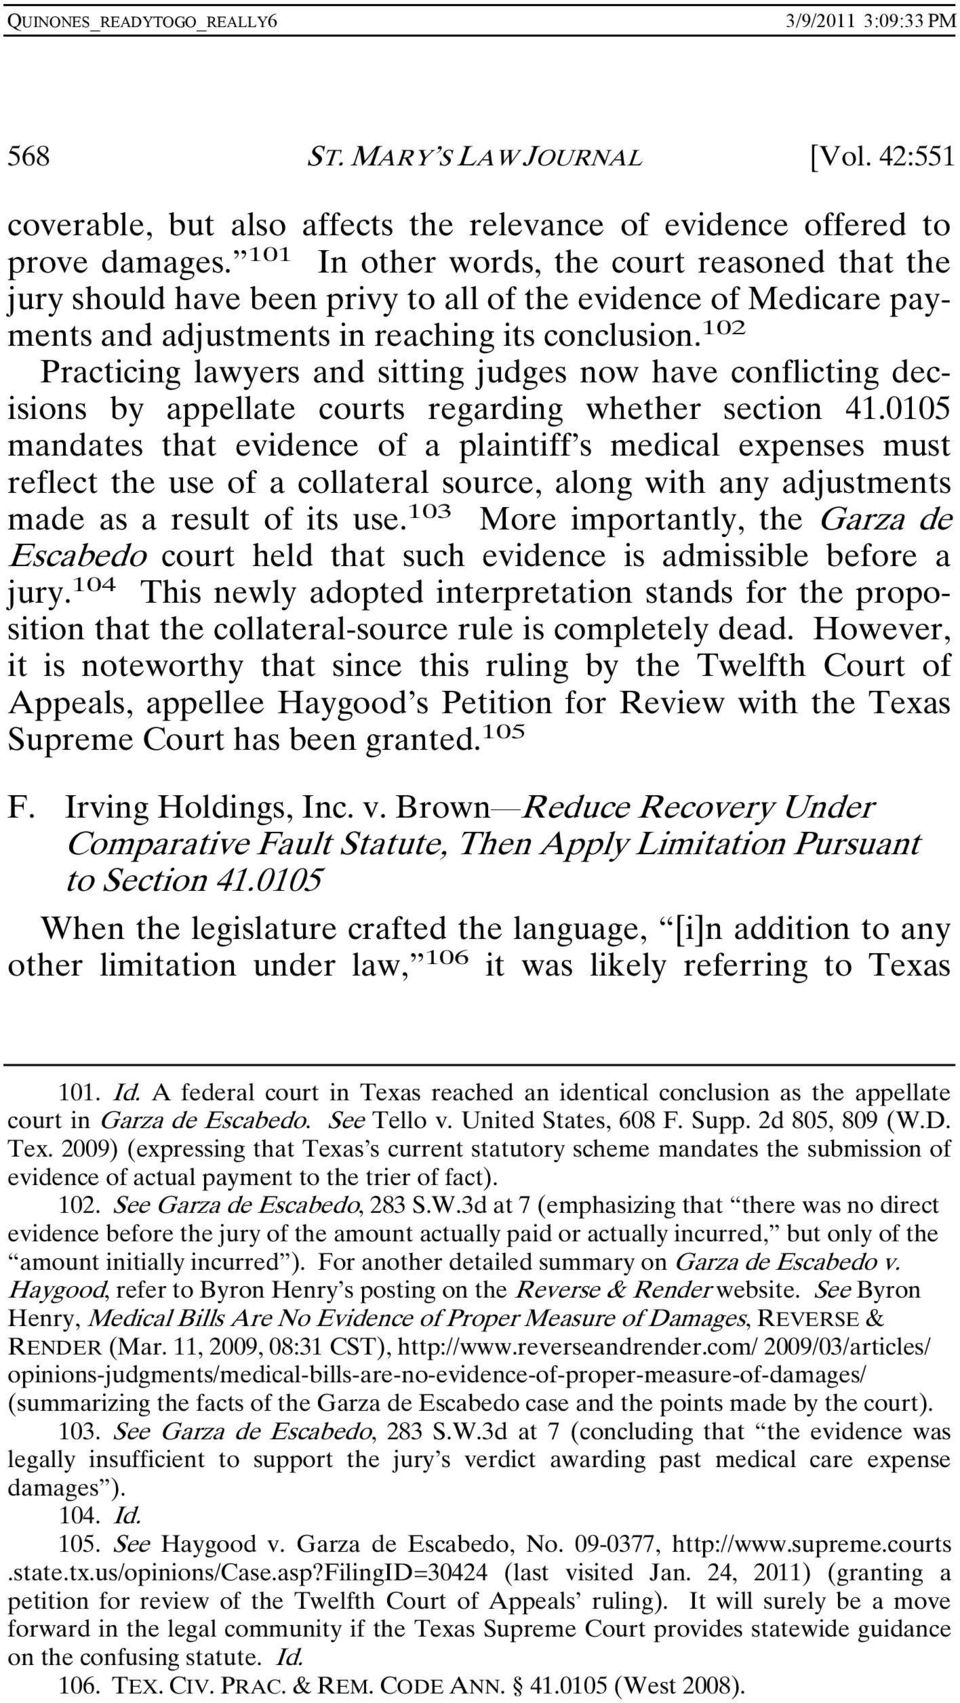 102 Practicing lawyers and sitting judges now have conflicting decisions by appellate courts regarding whether section 41.